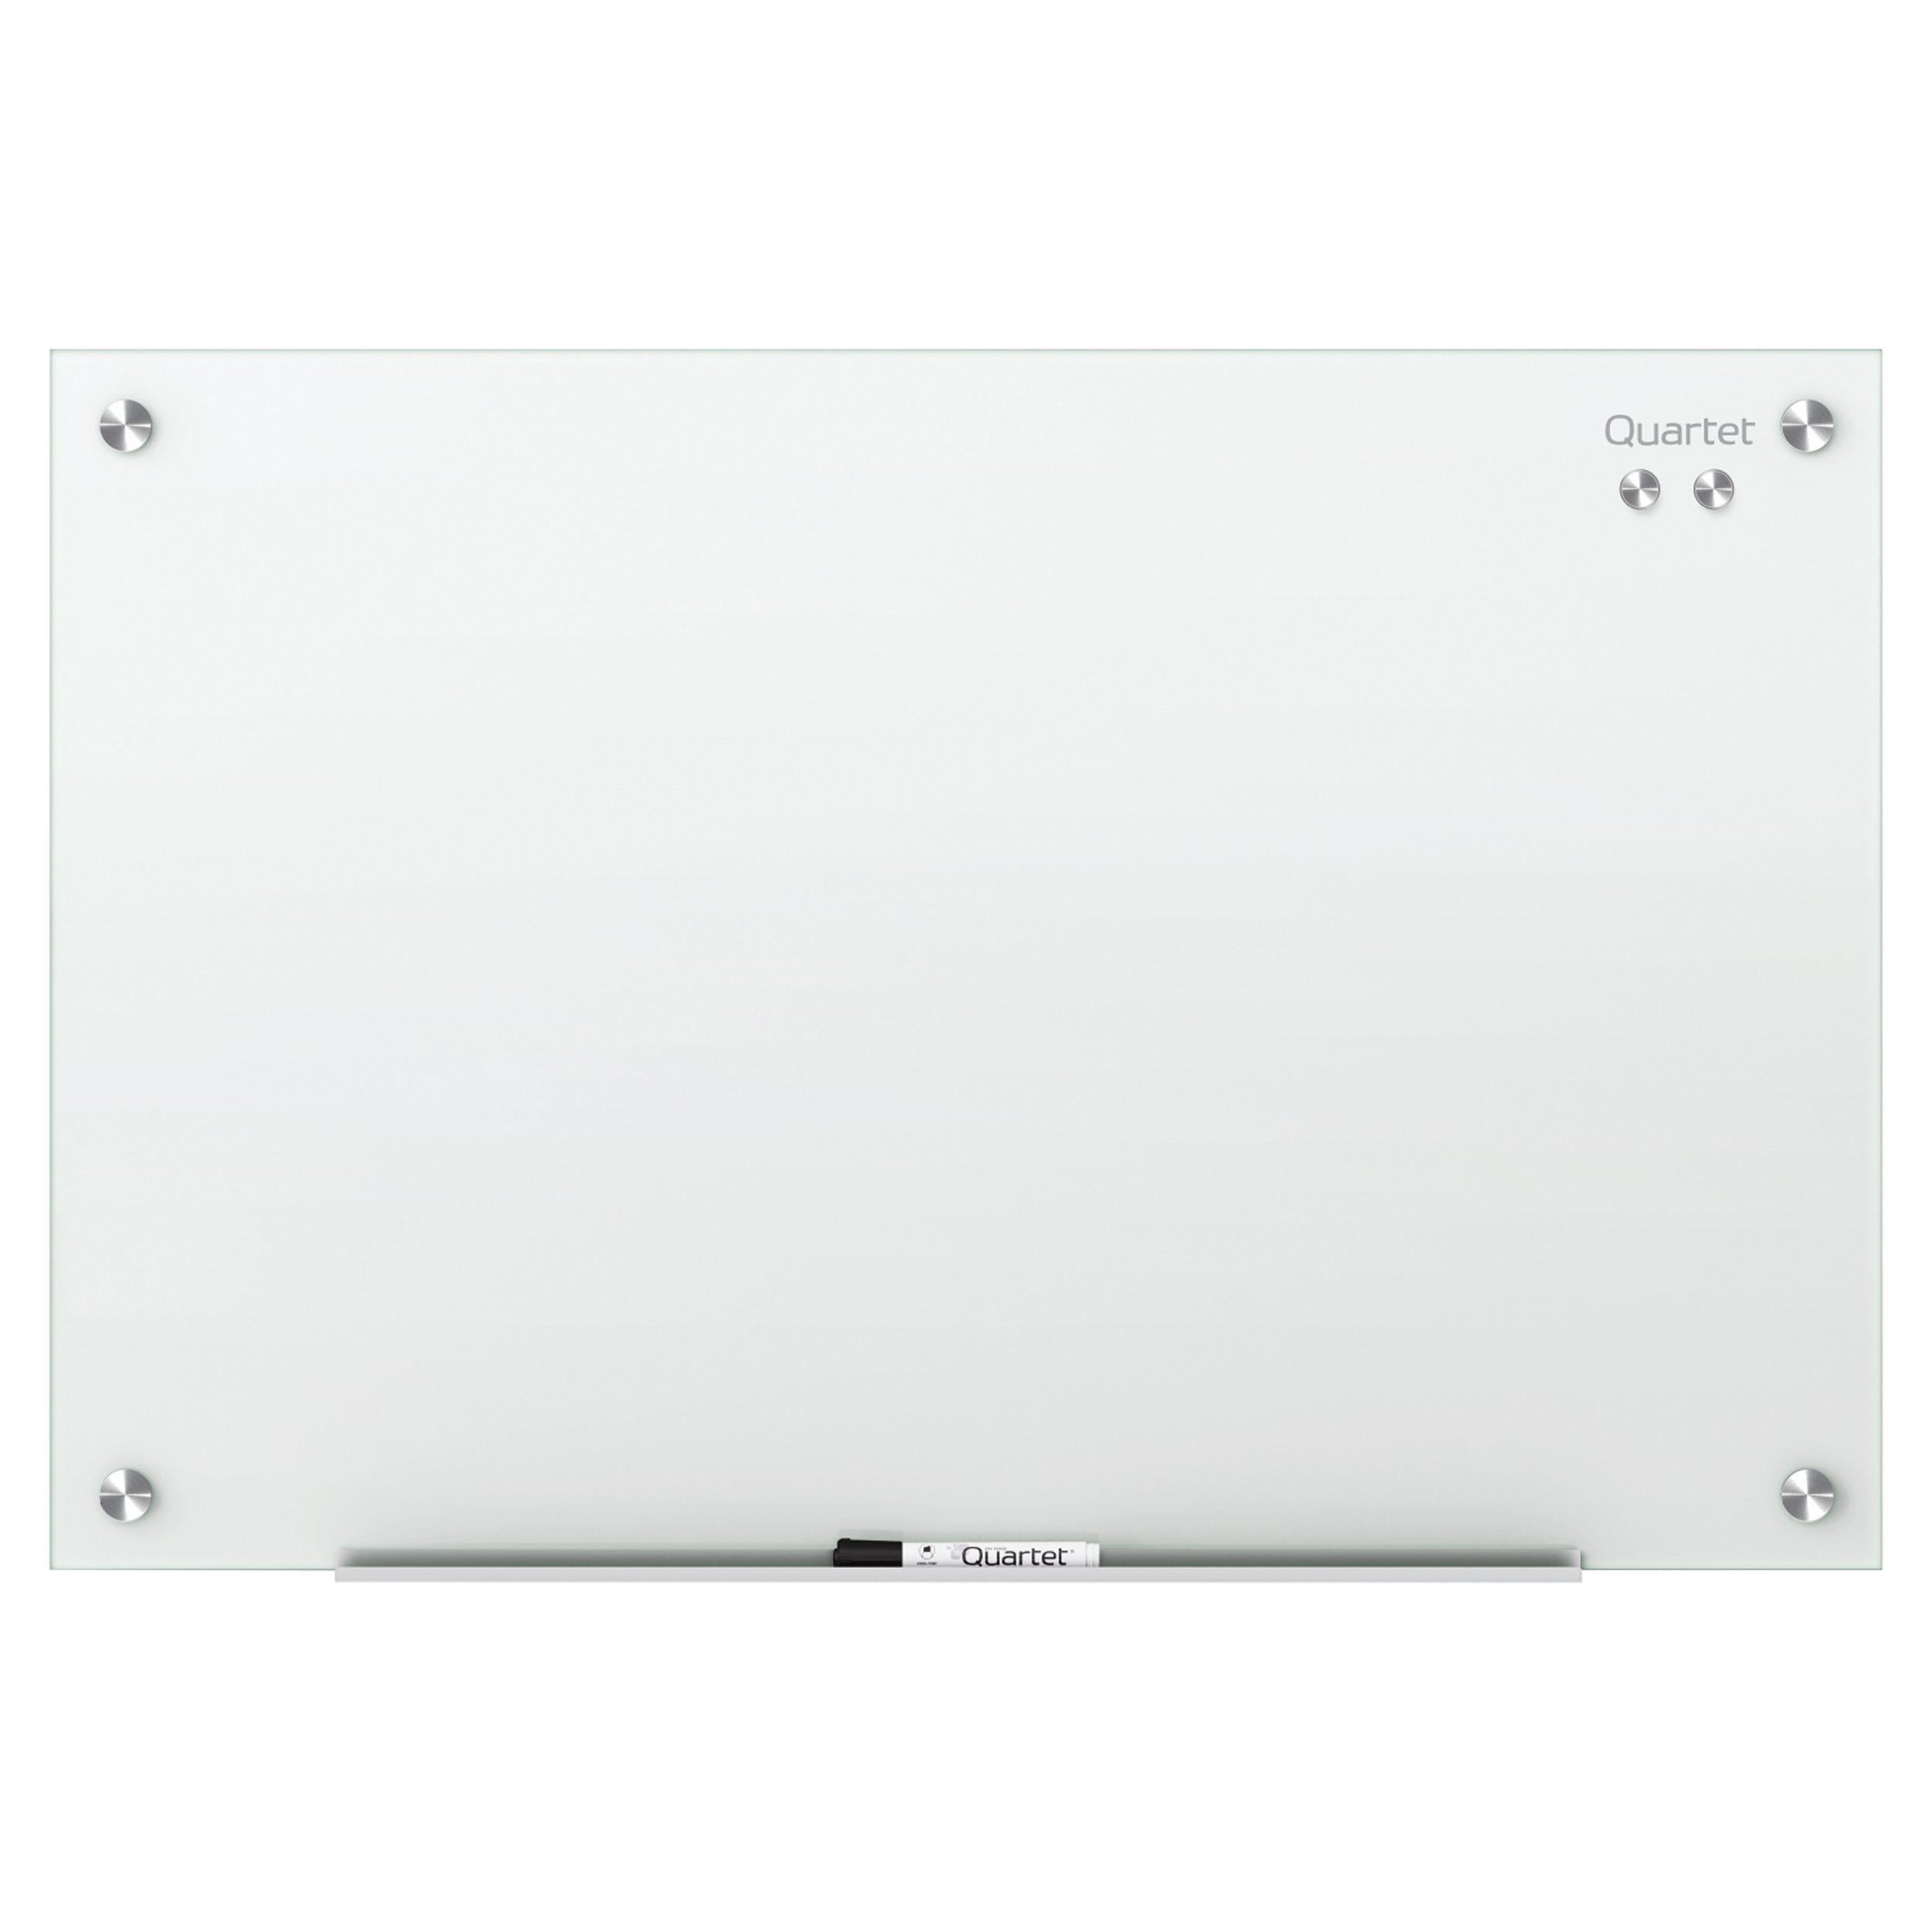 Quartet Glass Dry Erase Board, Whiteboard / White Board, Magnetic, 4' x 3', White Surface, Frameless, Infinity (G4836W)